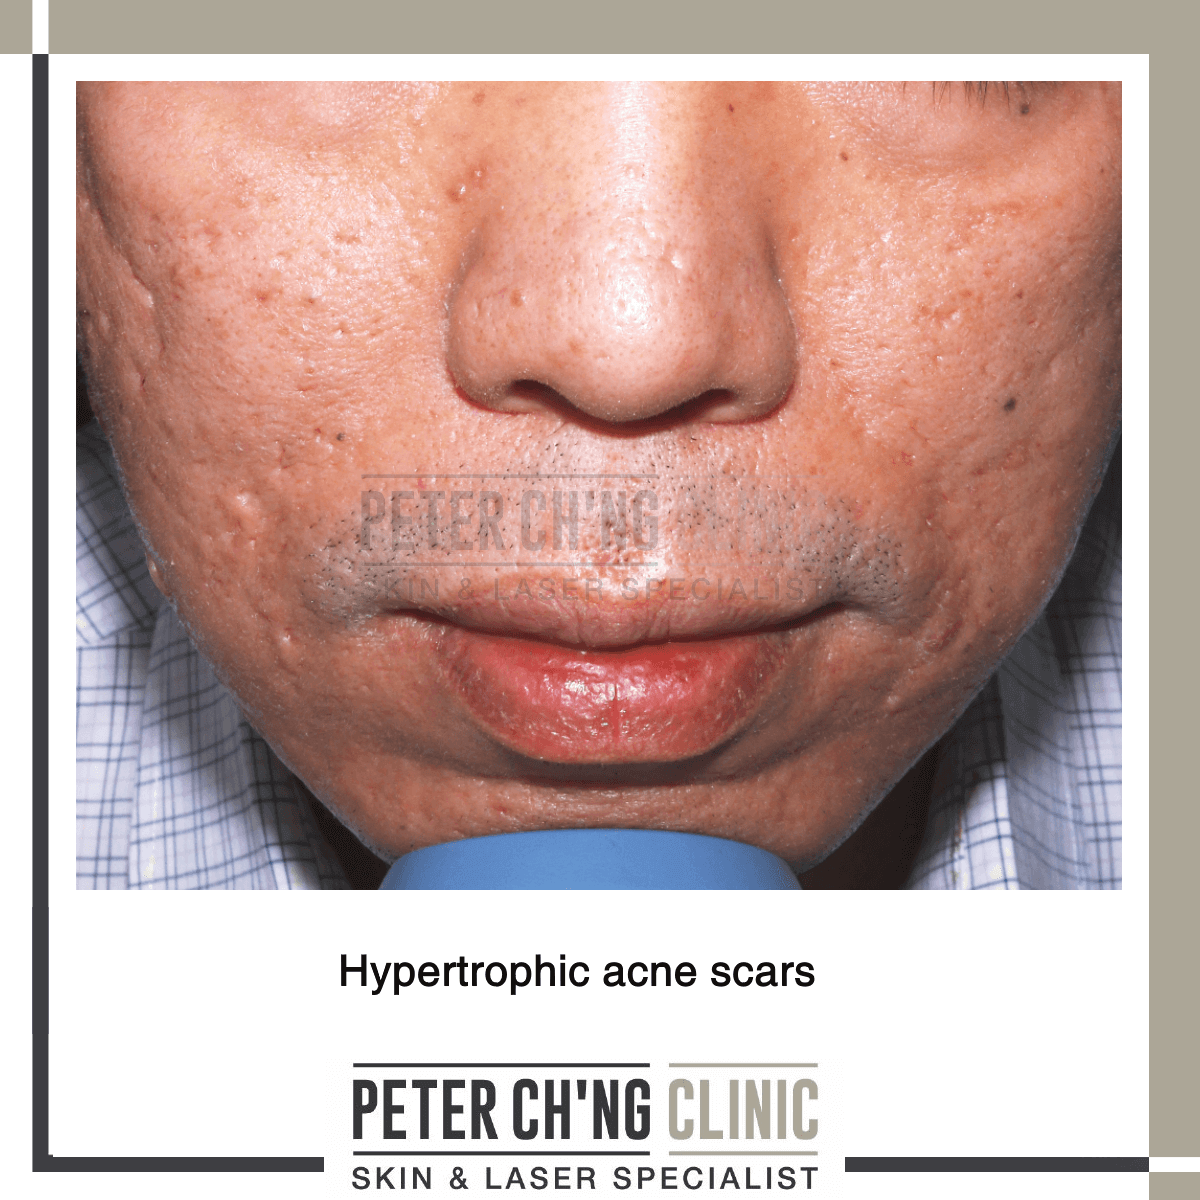 Hypertrophic acne scars